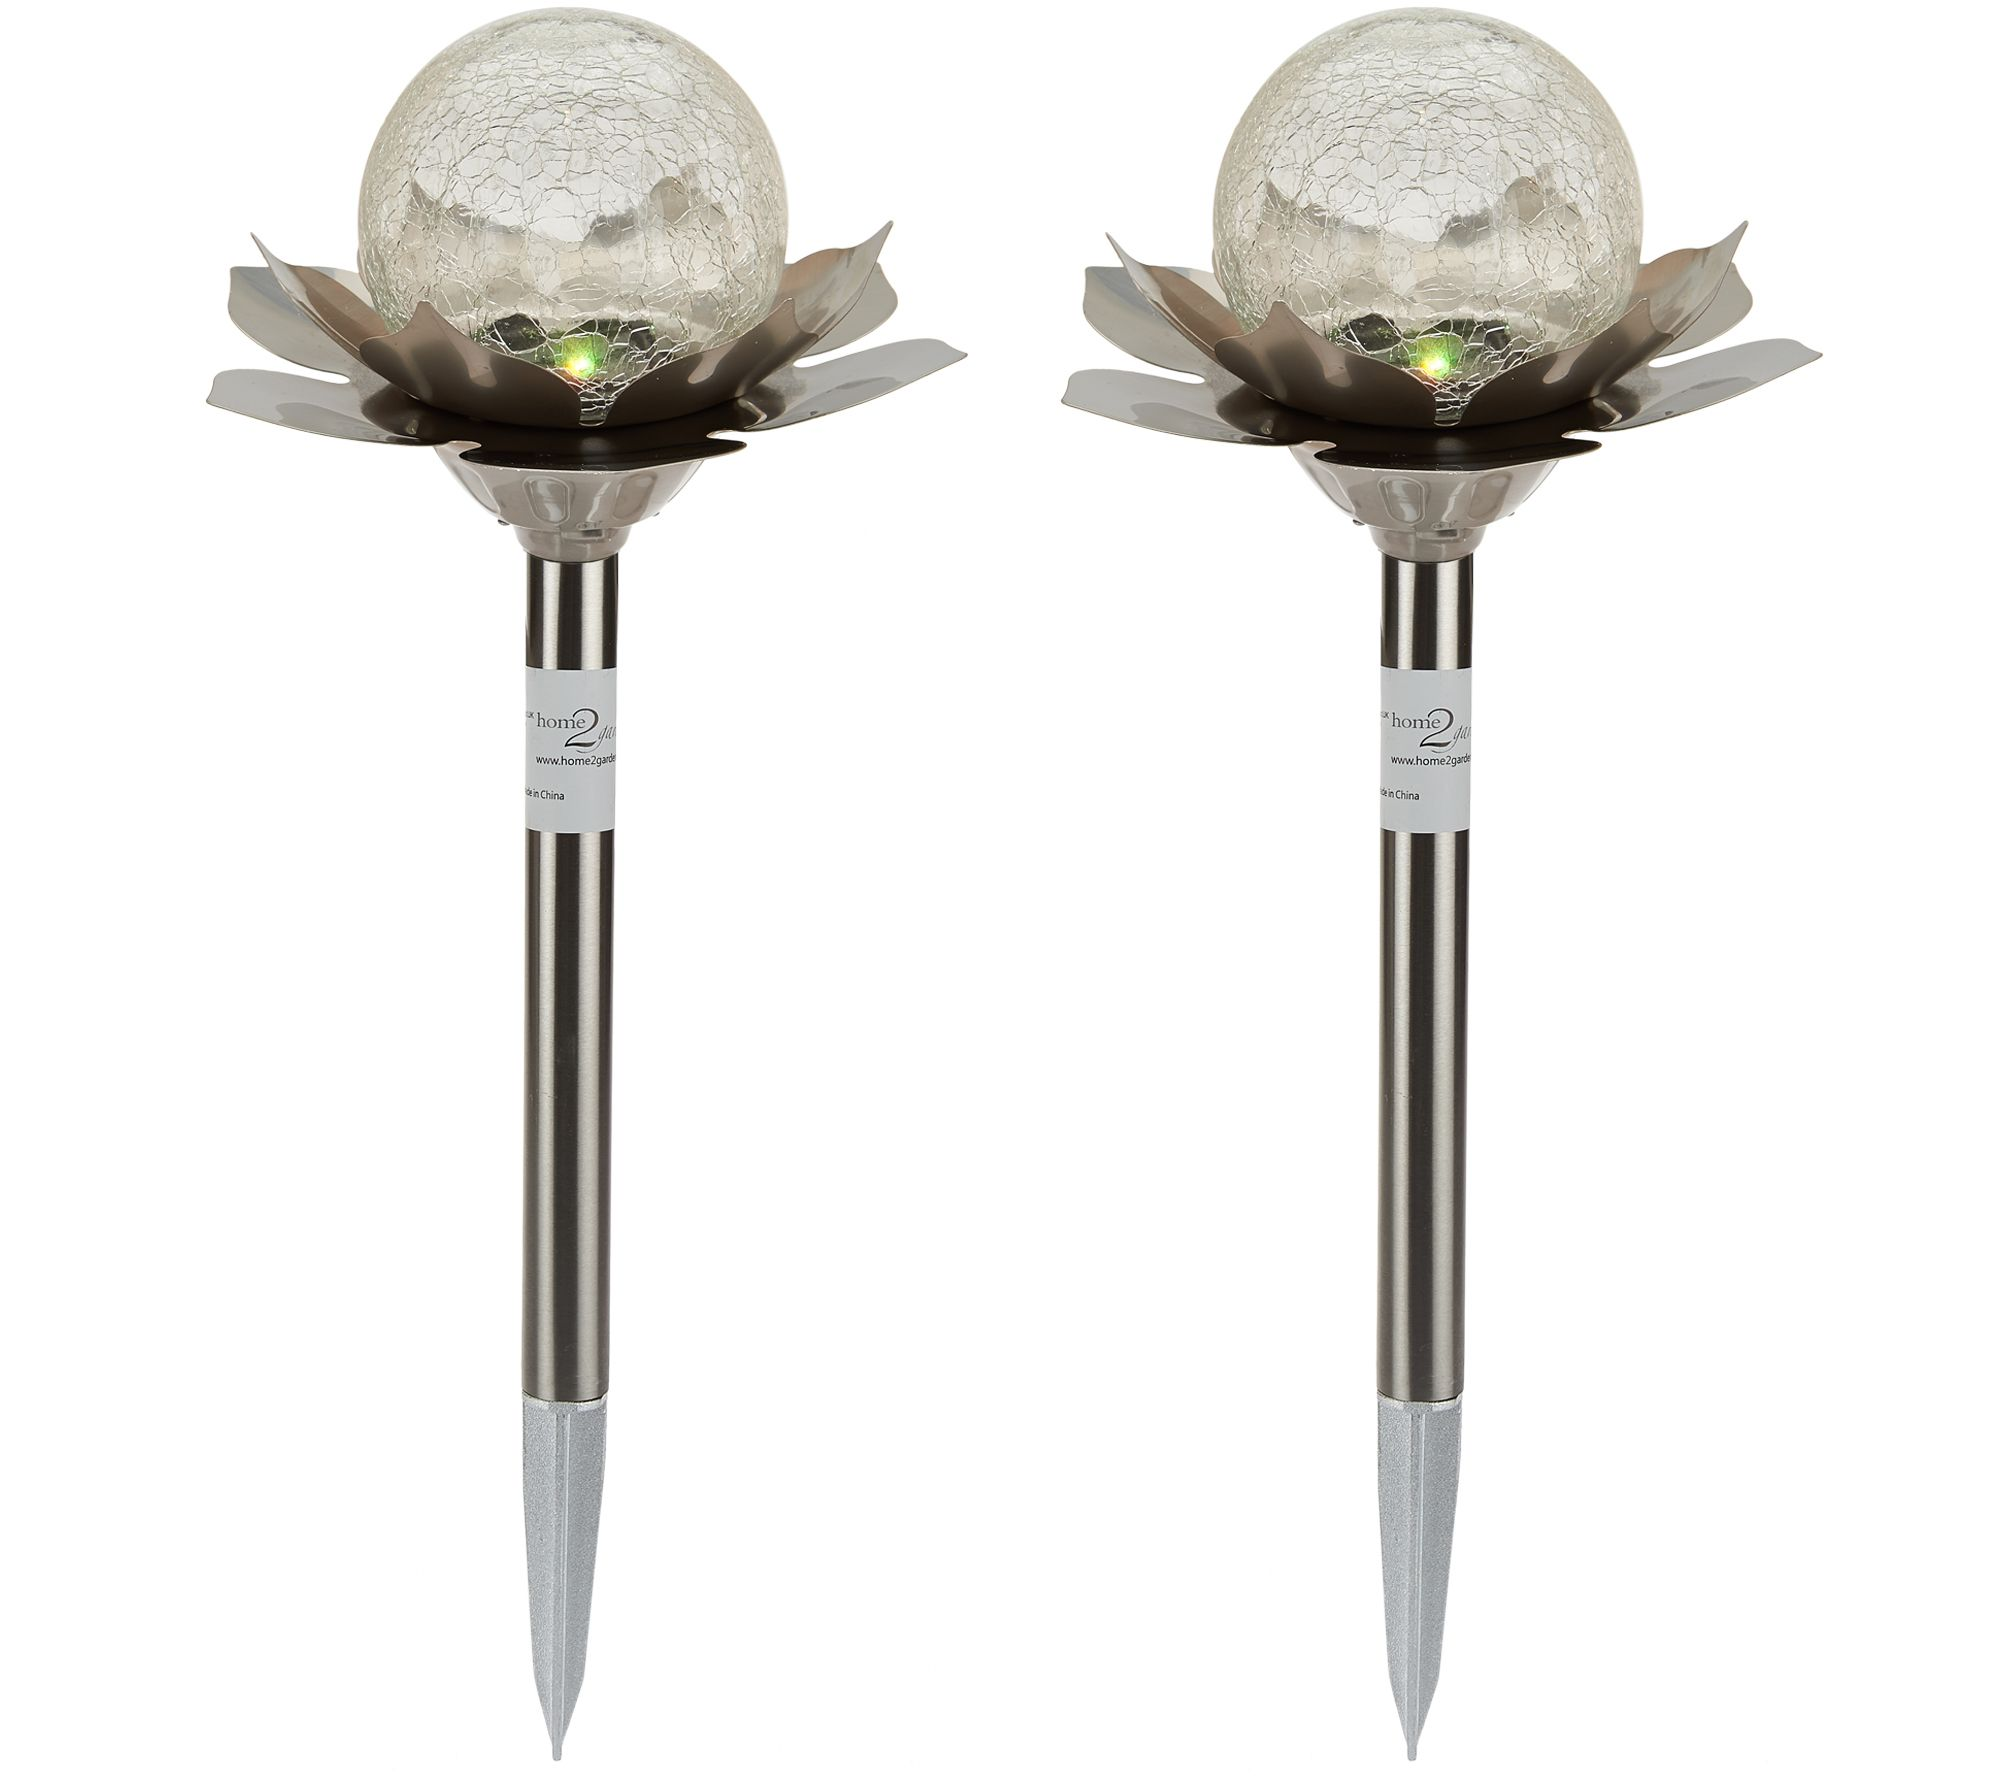 Qvc Outdoor Wall Lights: Set Of 2 Color Changing Solar Flower Stake Lights